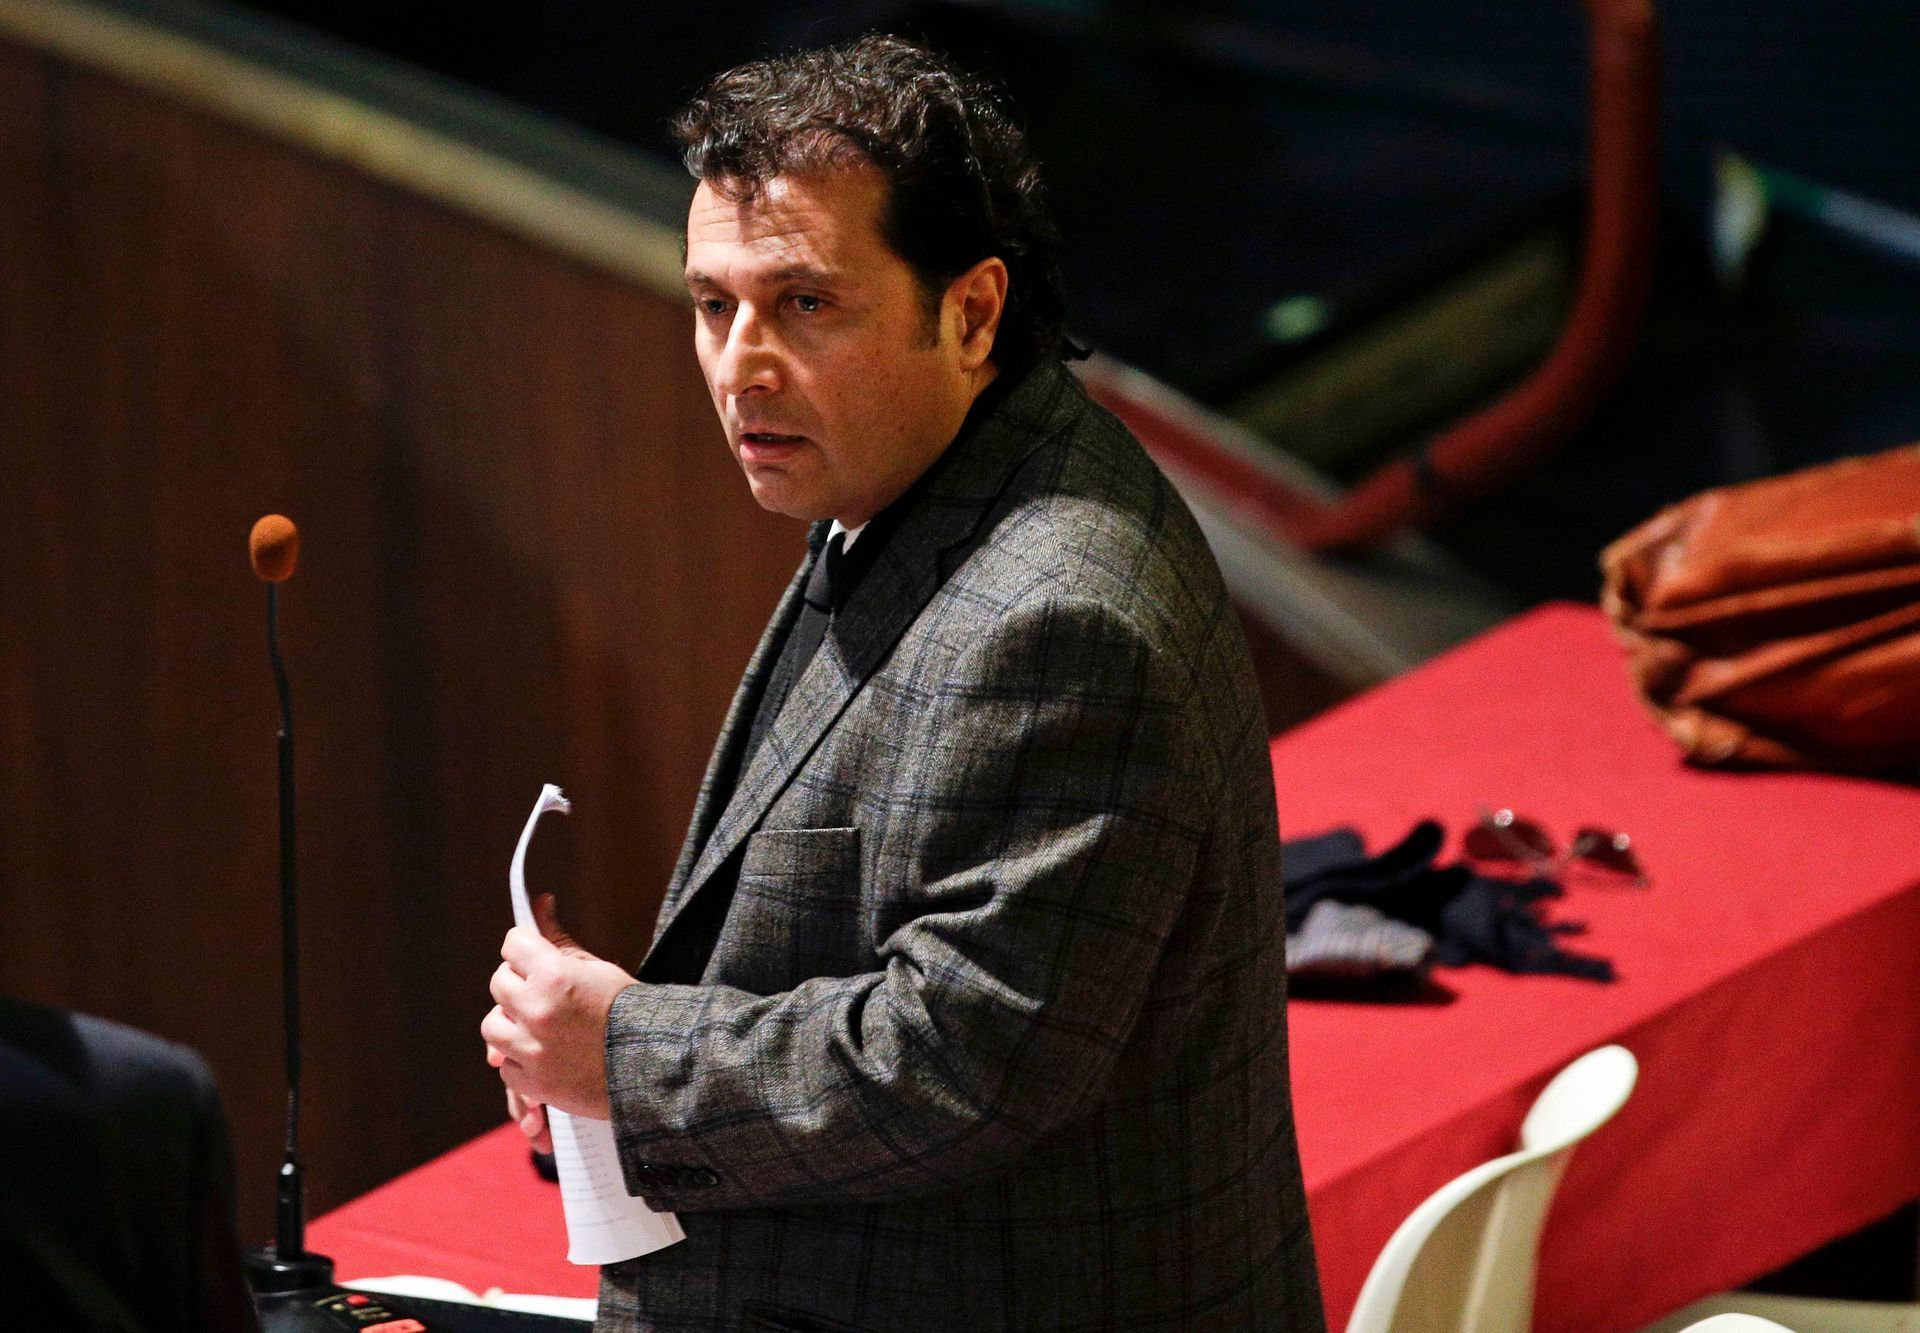 Captain of the Costa Concordia cruise liner Schettino prepares to read a speech during his trial in Grosseto